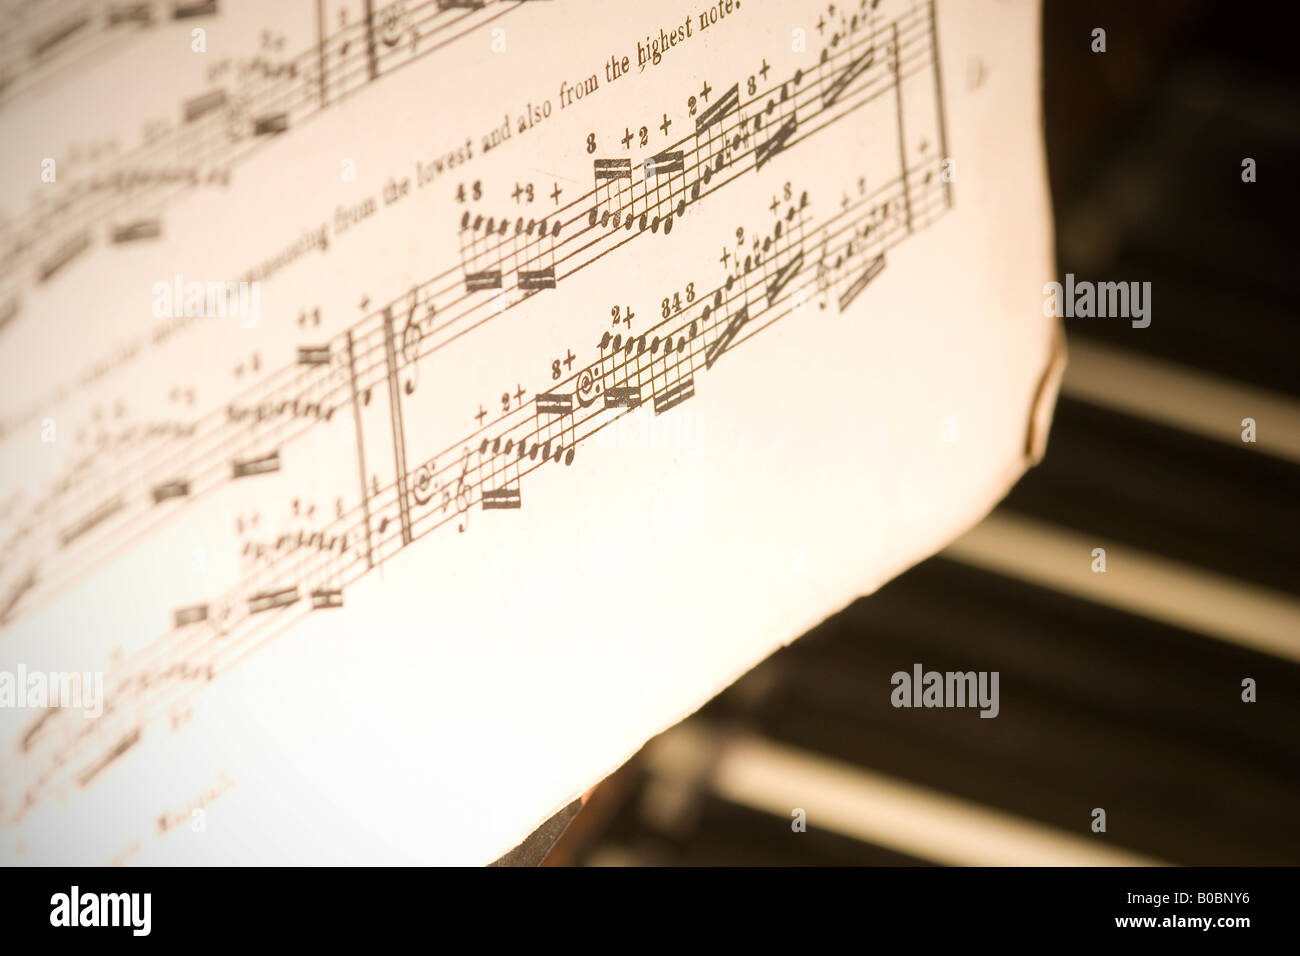 Notation music immagini & notation music fotos stock alamy